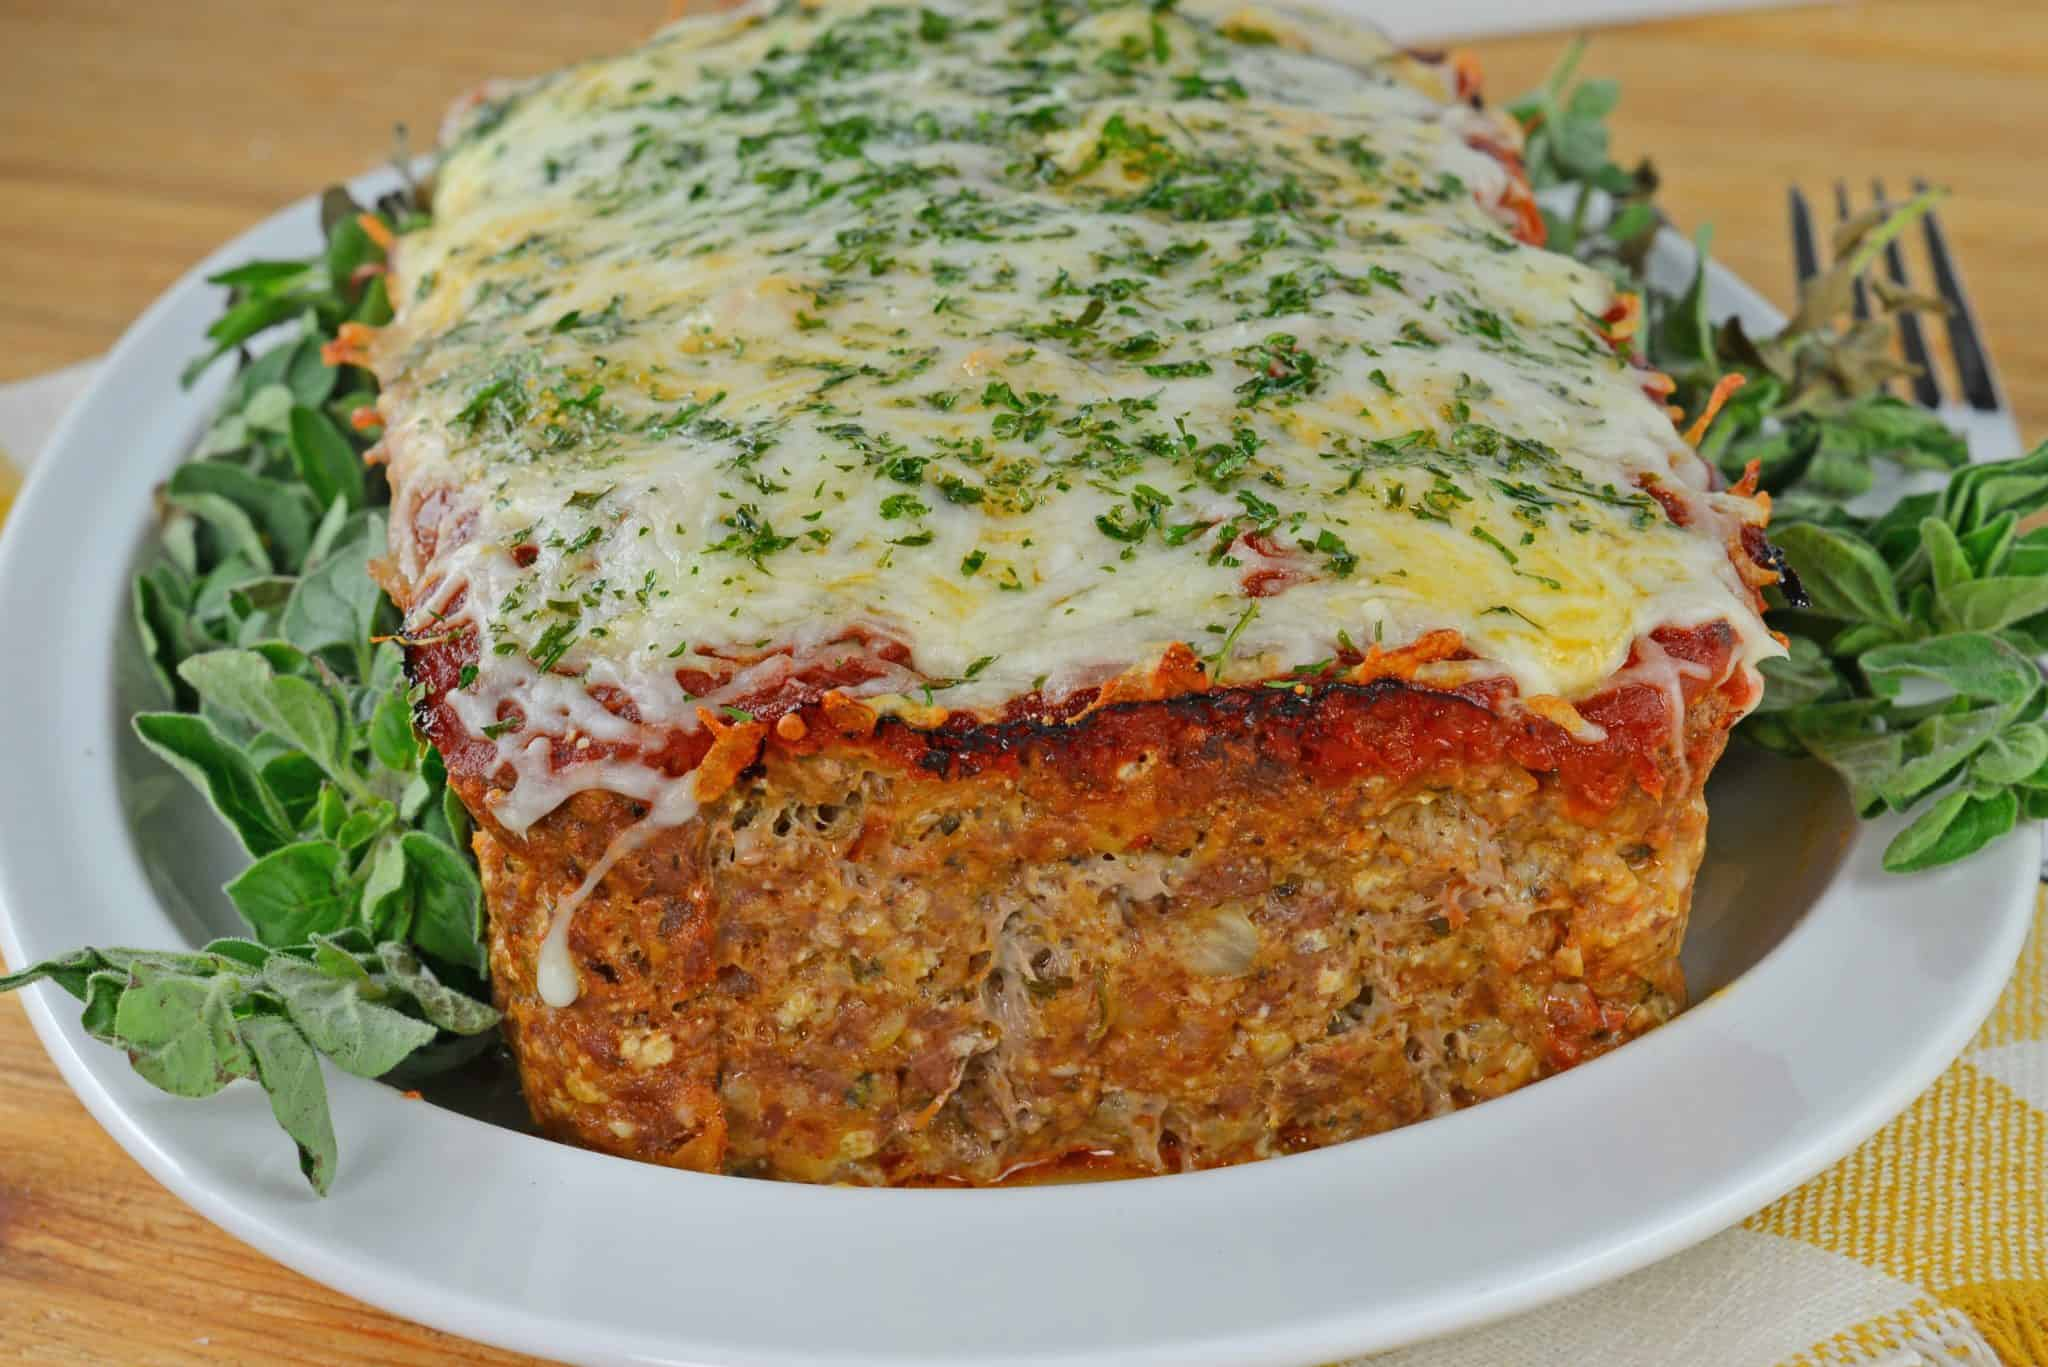 Italian Meatloaf blends Italian sausage and ground beef with spices and cheese for a tender one dish meal.